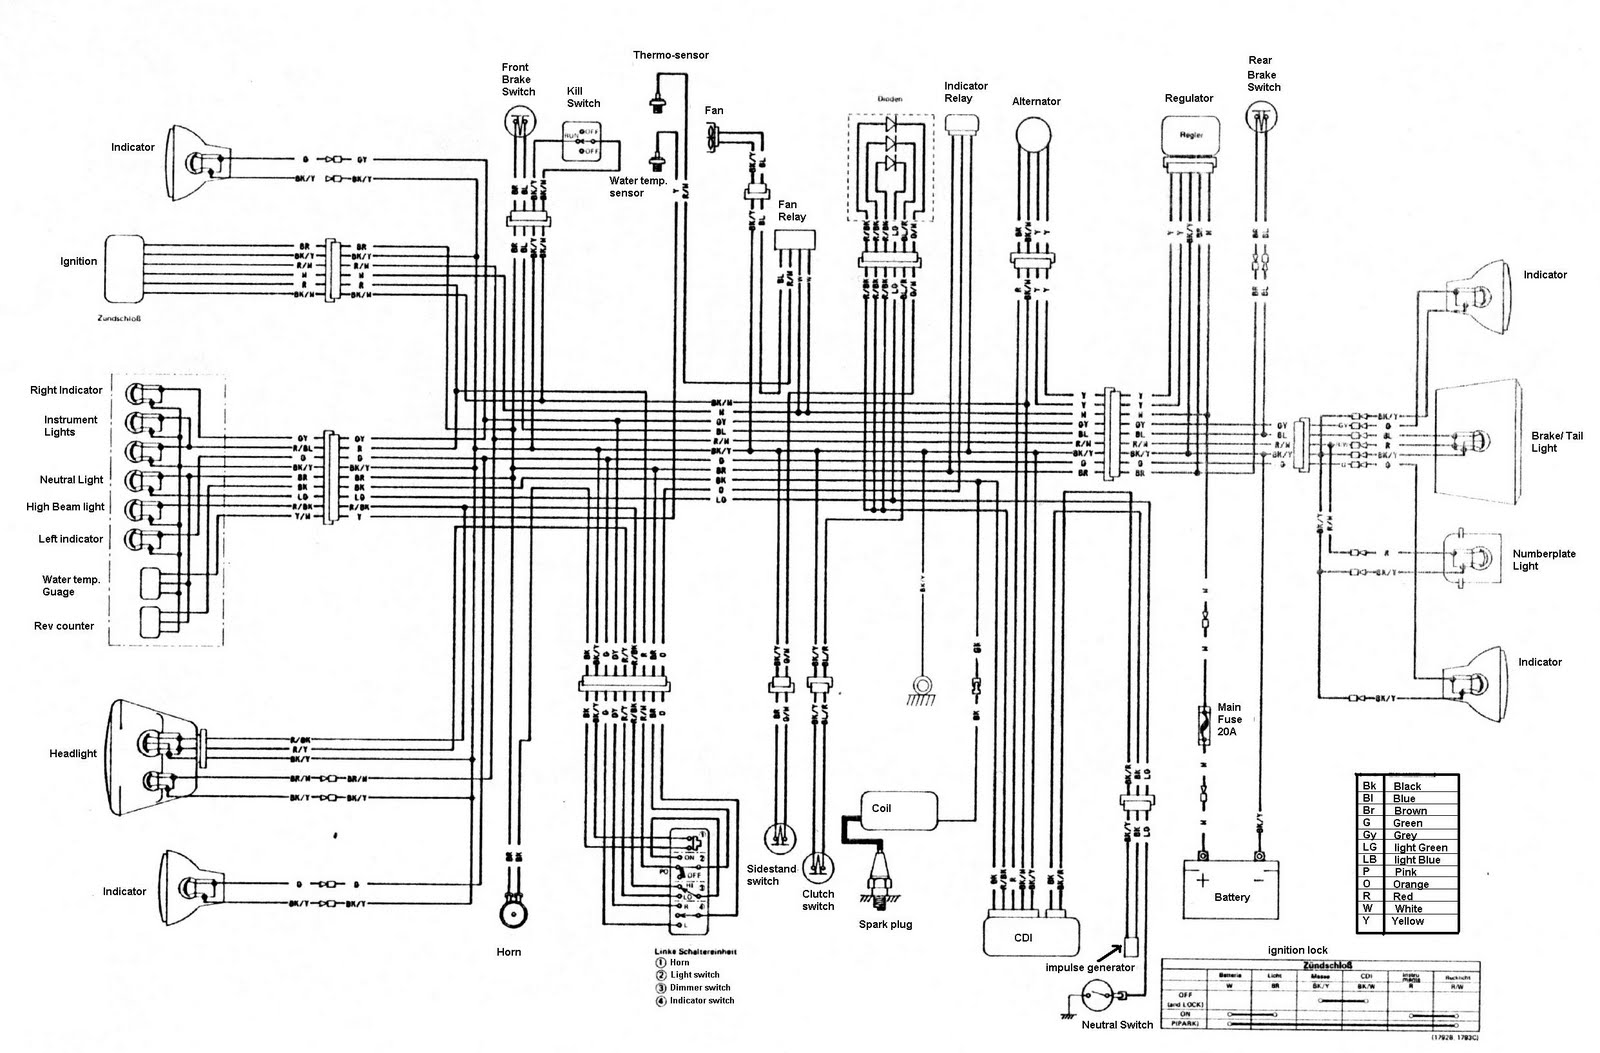 [WLLP_2054]   DIAGRAM] 1970 Kawasaki 250 Wiring Diagram FULL Version HD Quality Wiring  Diagram - MACHINEDIAGRAM.PLU-SAINT-MORILLON.FR | Ninja 250 Wiring Diagram |  | machinediagram.plu-saint-morillon.fr